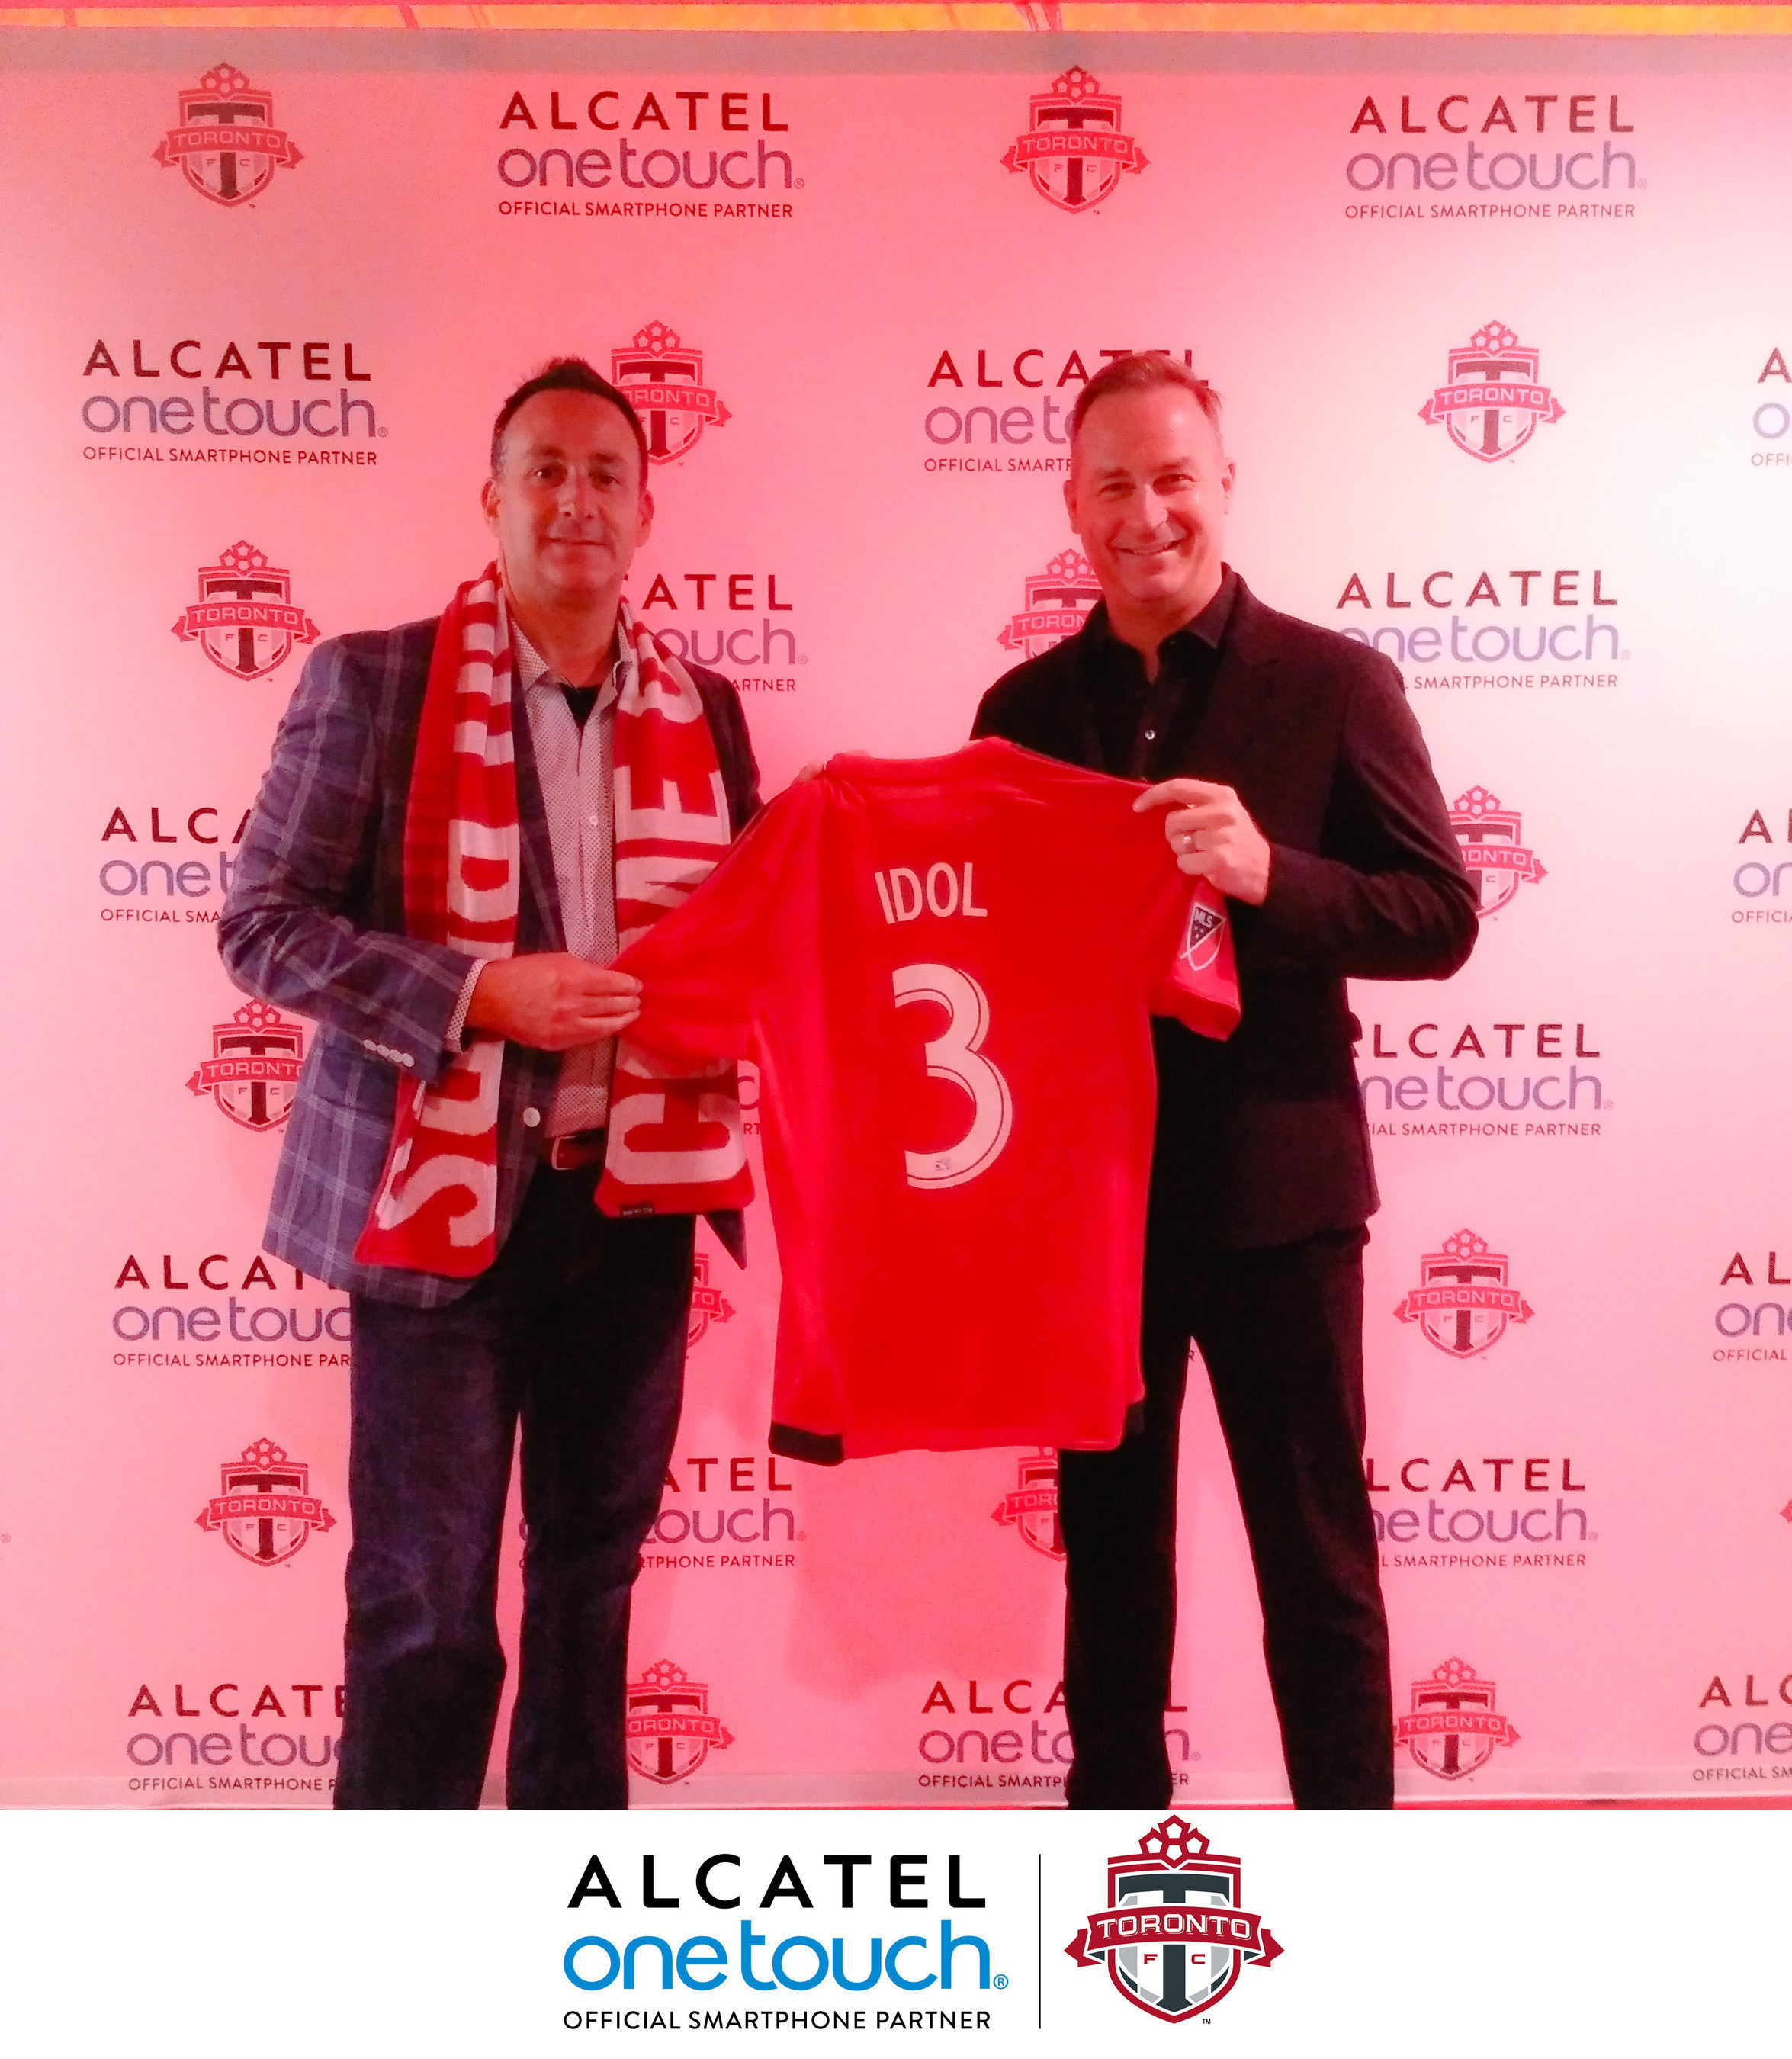 ALCATEL ONETOUCH Announced As The Official Smartphone Partner Of Toronto FC